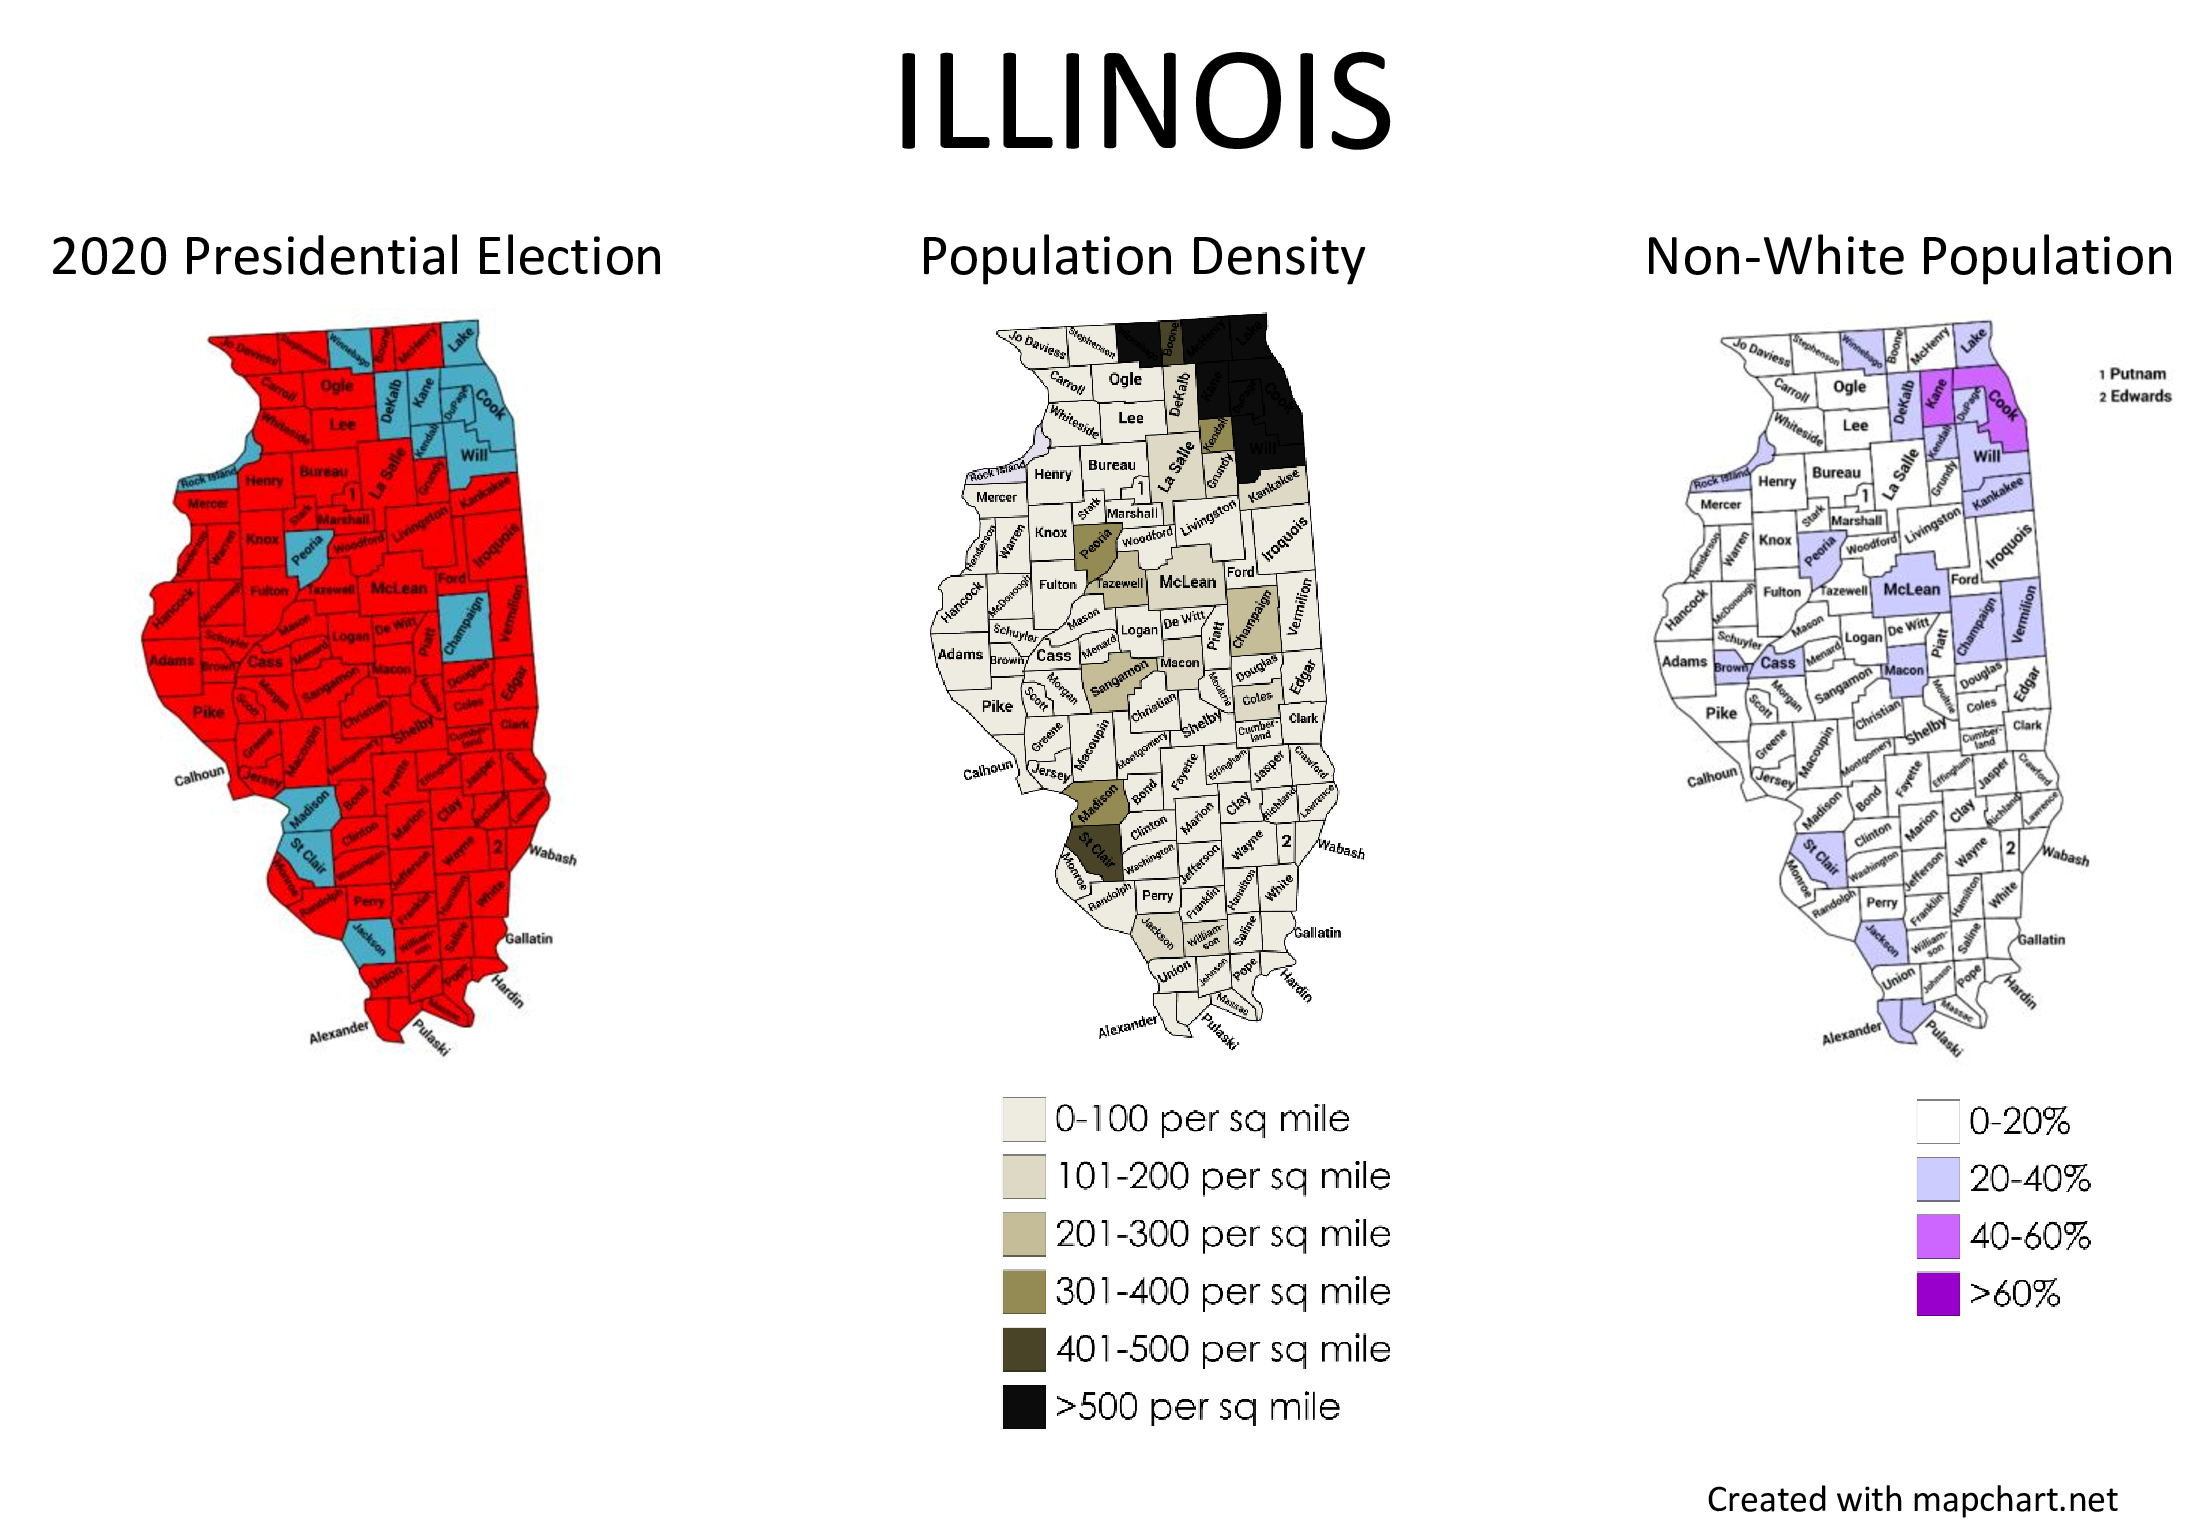 Comparison of county-level 2020 presidential election results, population density, and non-White population